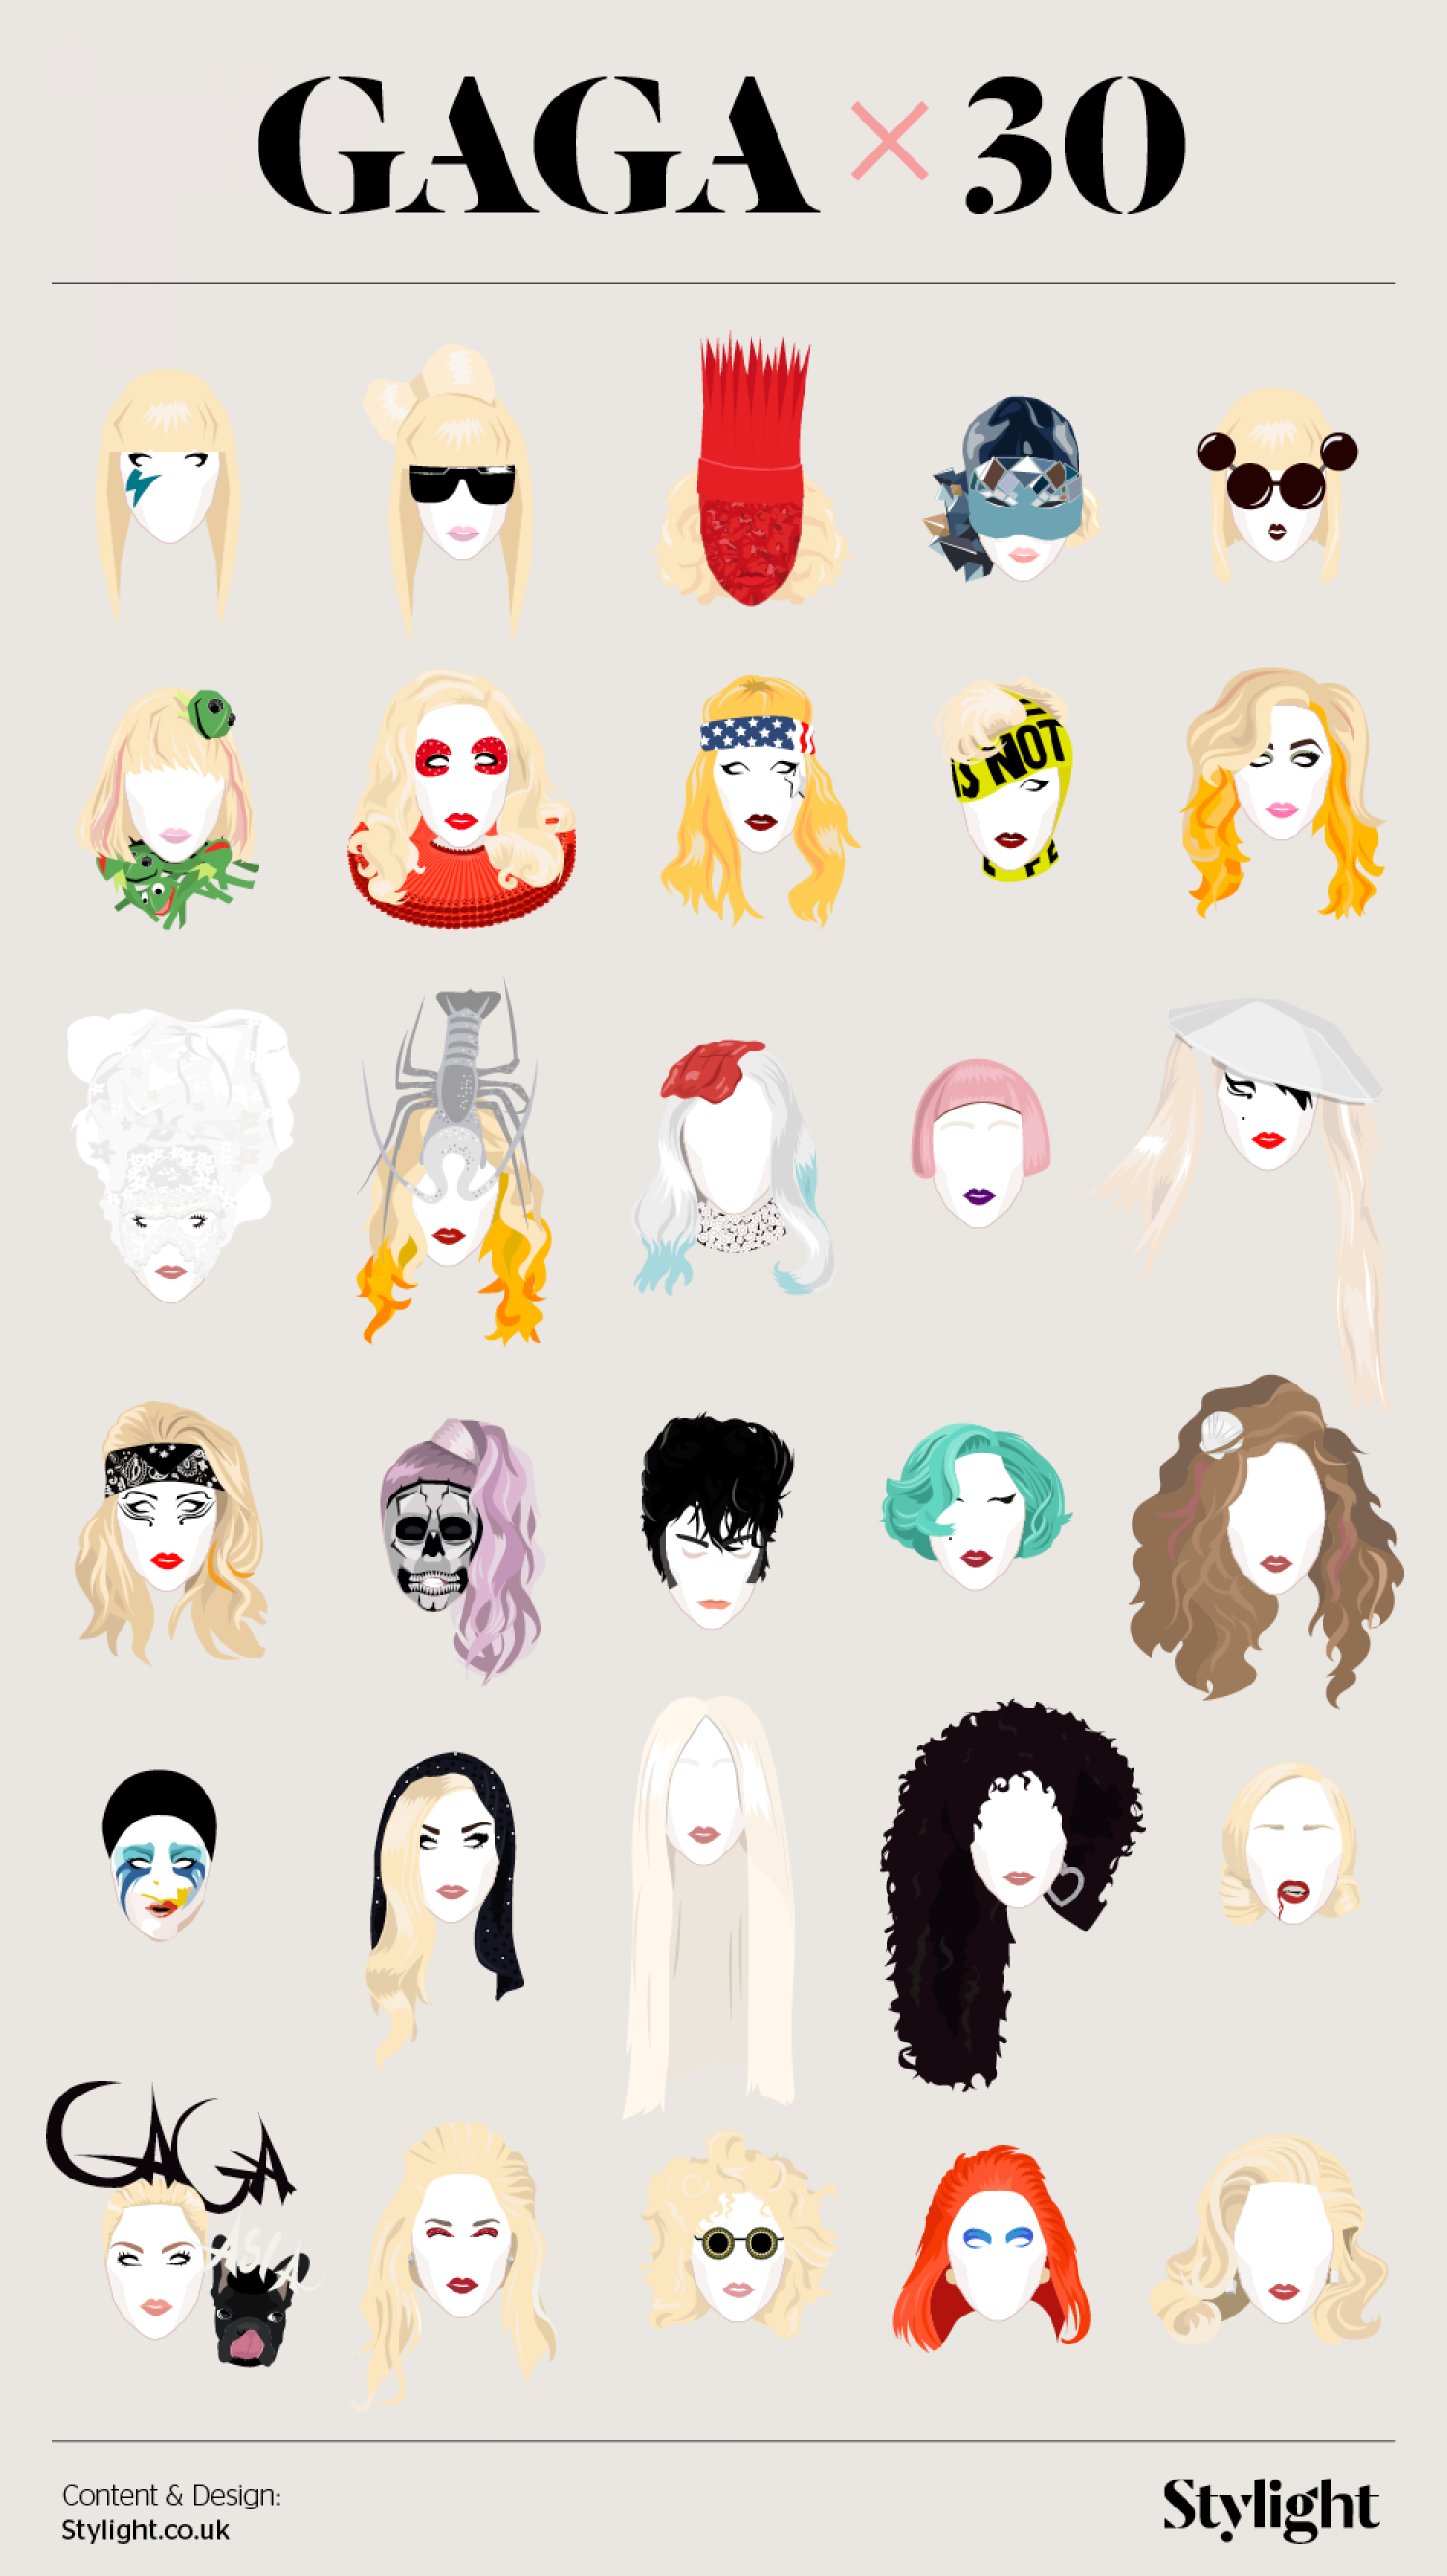 Happy Birthday Lady Gaga! Celebrating her 30th with 30 of her most iconic looks! Infographic